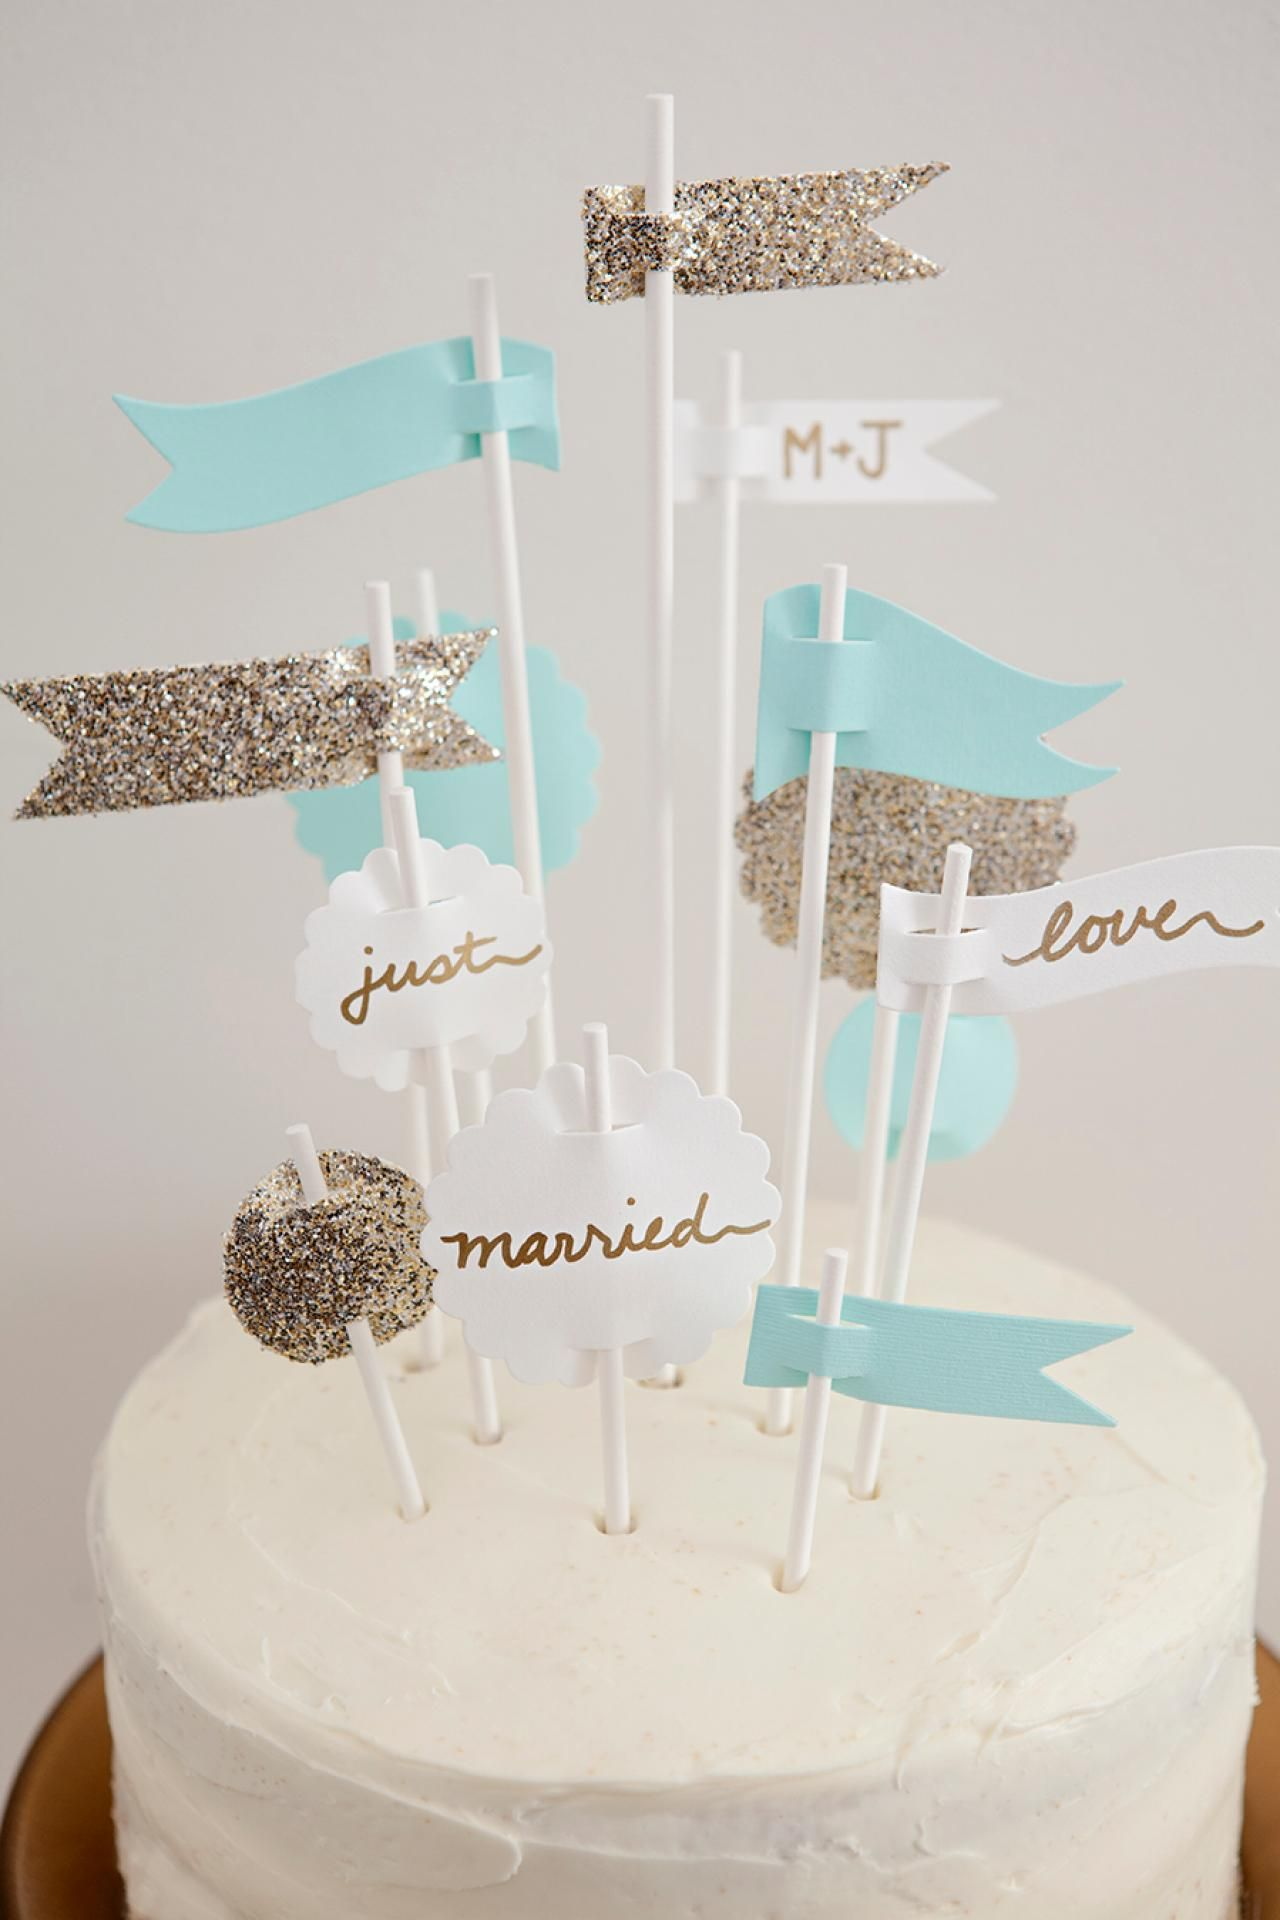 Weddings: Cake Topper Ideas and Projects | Wedding planners ...